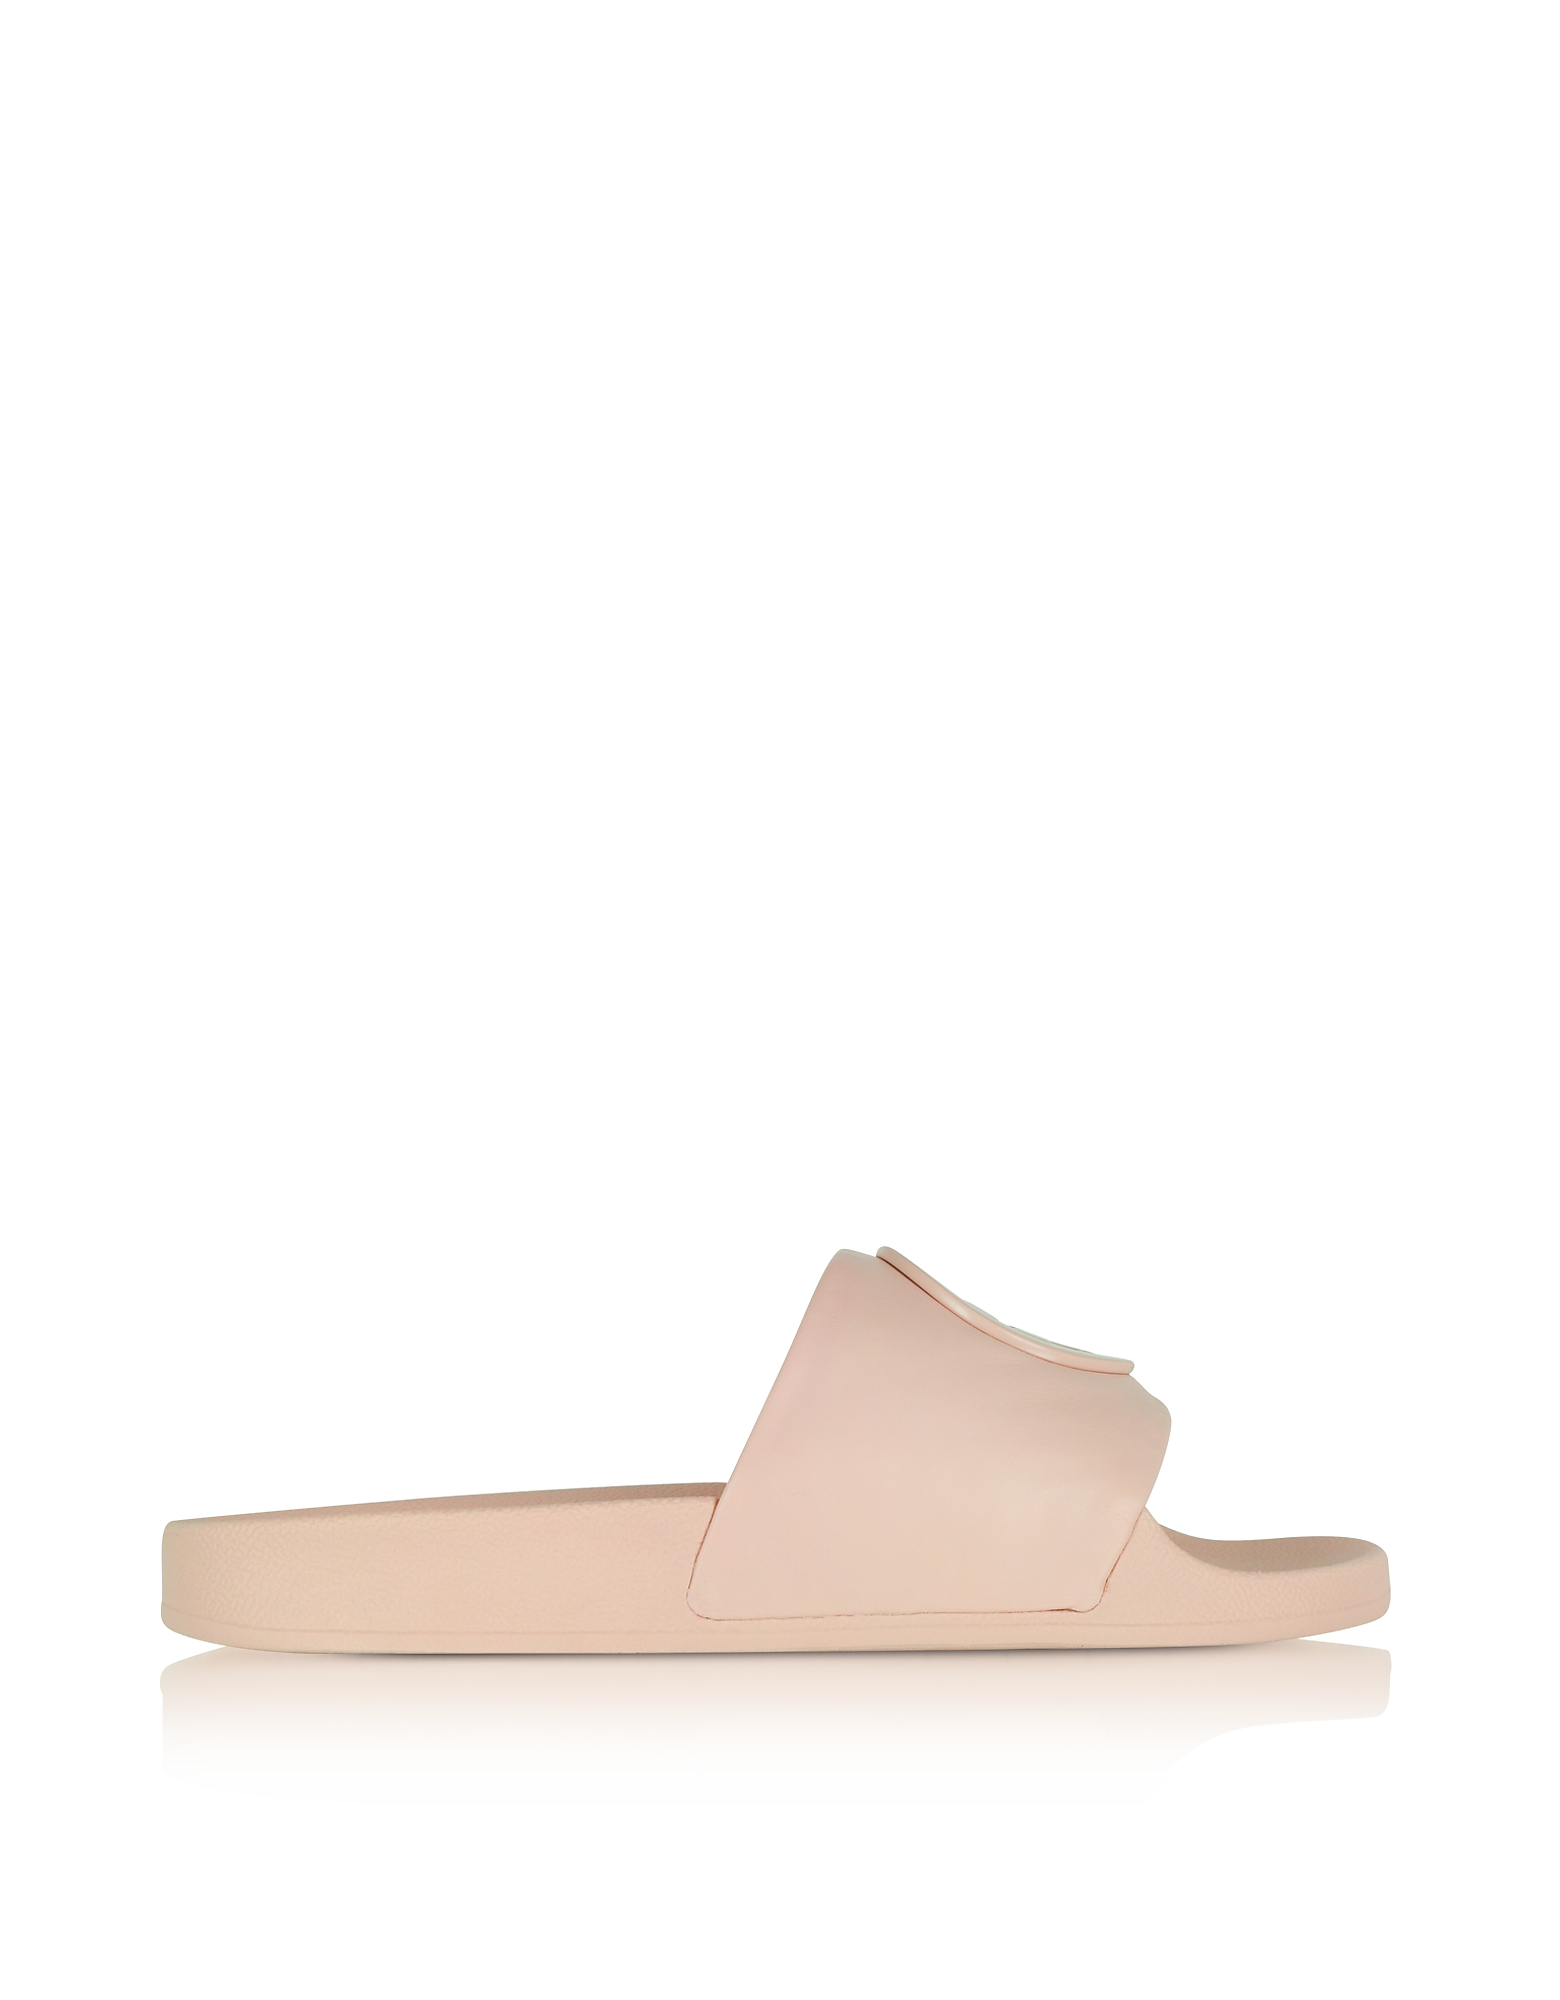 Tory Burch Shoes, Shell Pink Leather Lina Slide Sandals